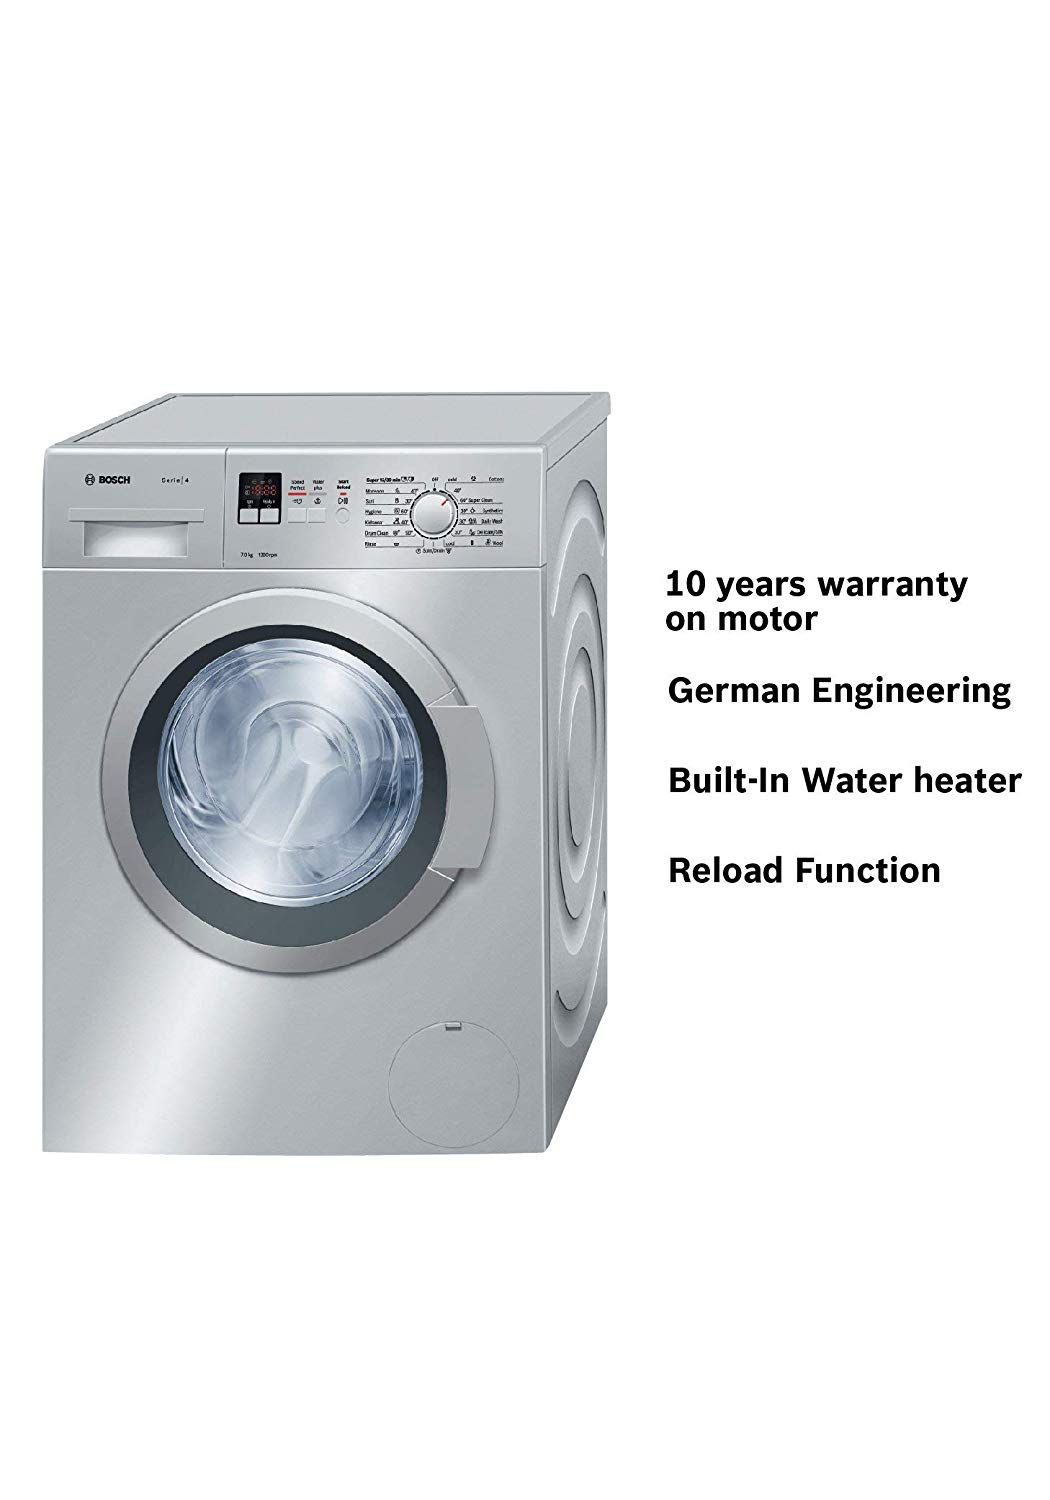 Best Offers And Hot Deals Buy Large Appliances Washing Machines Dryers Bosch 7 Kg Fully A Washing Machine Dryer Front Loading Washing Machine Washing Machine